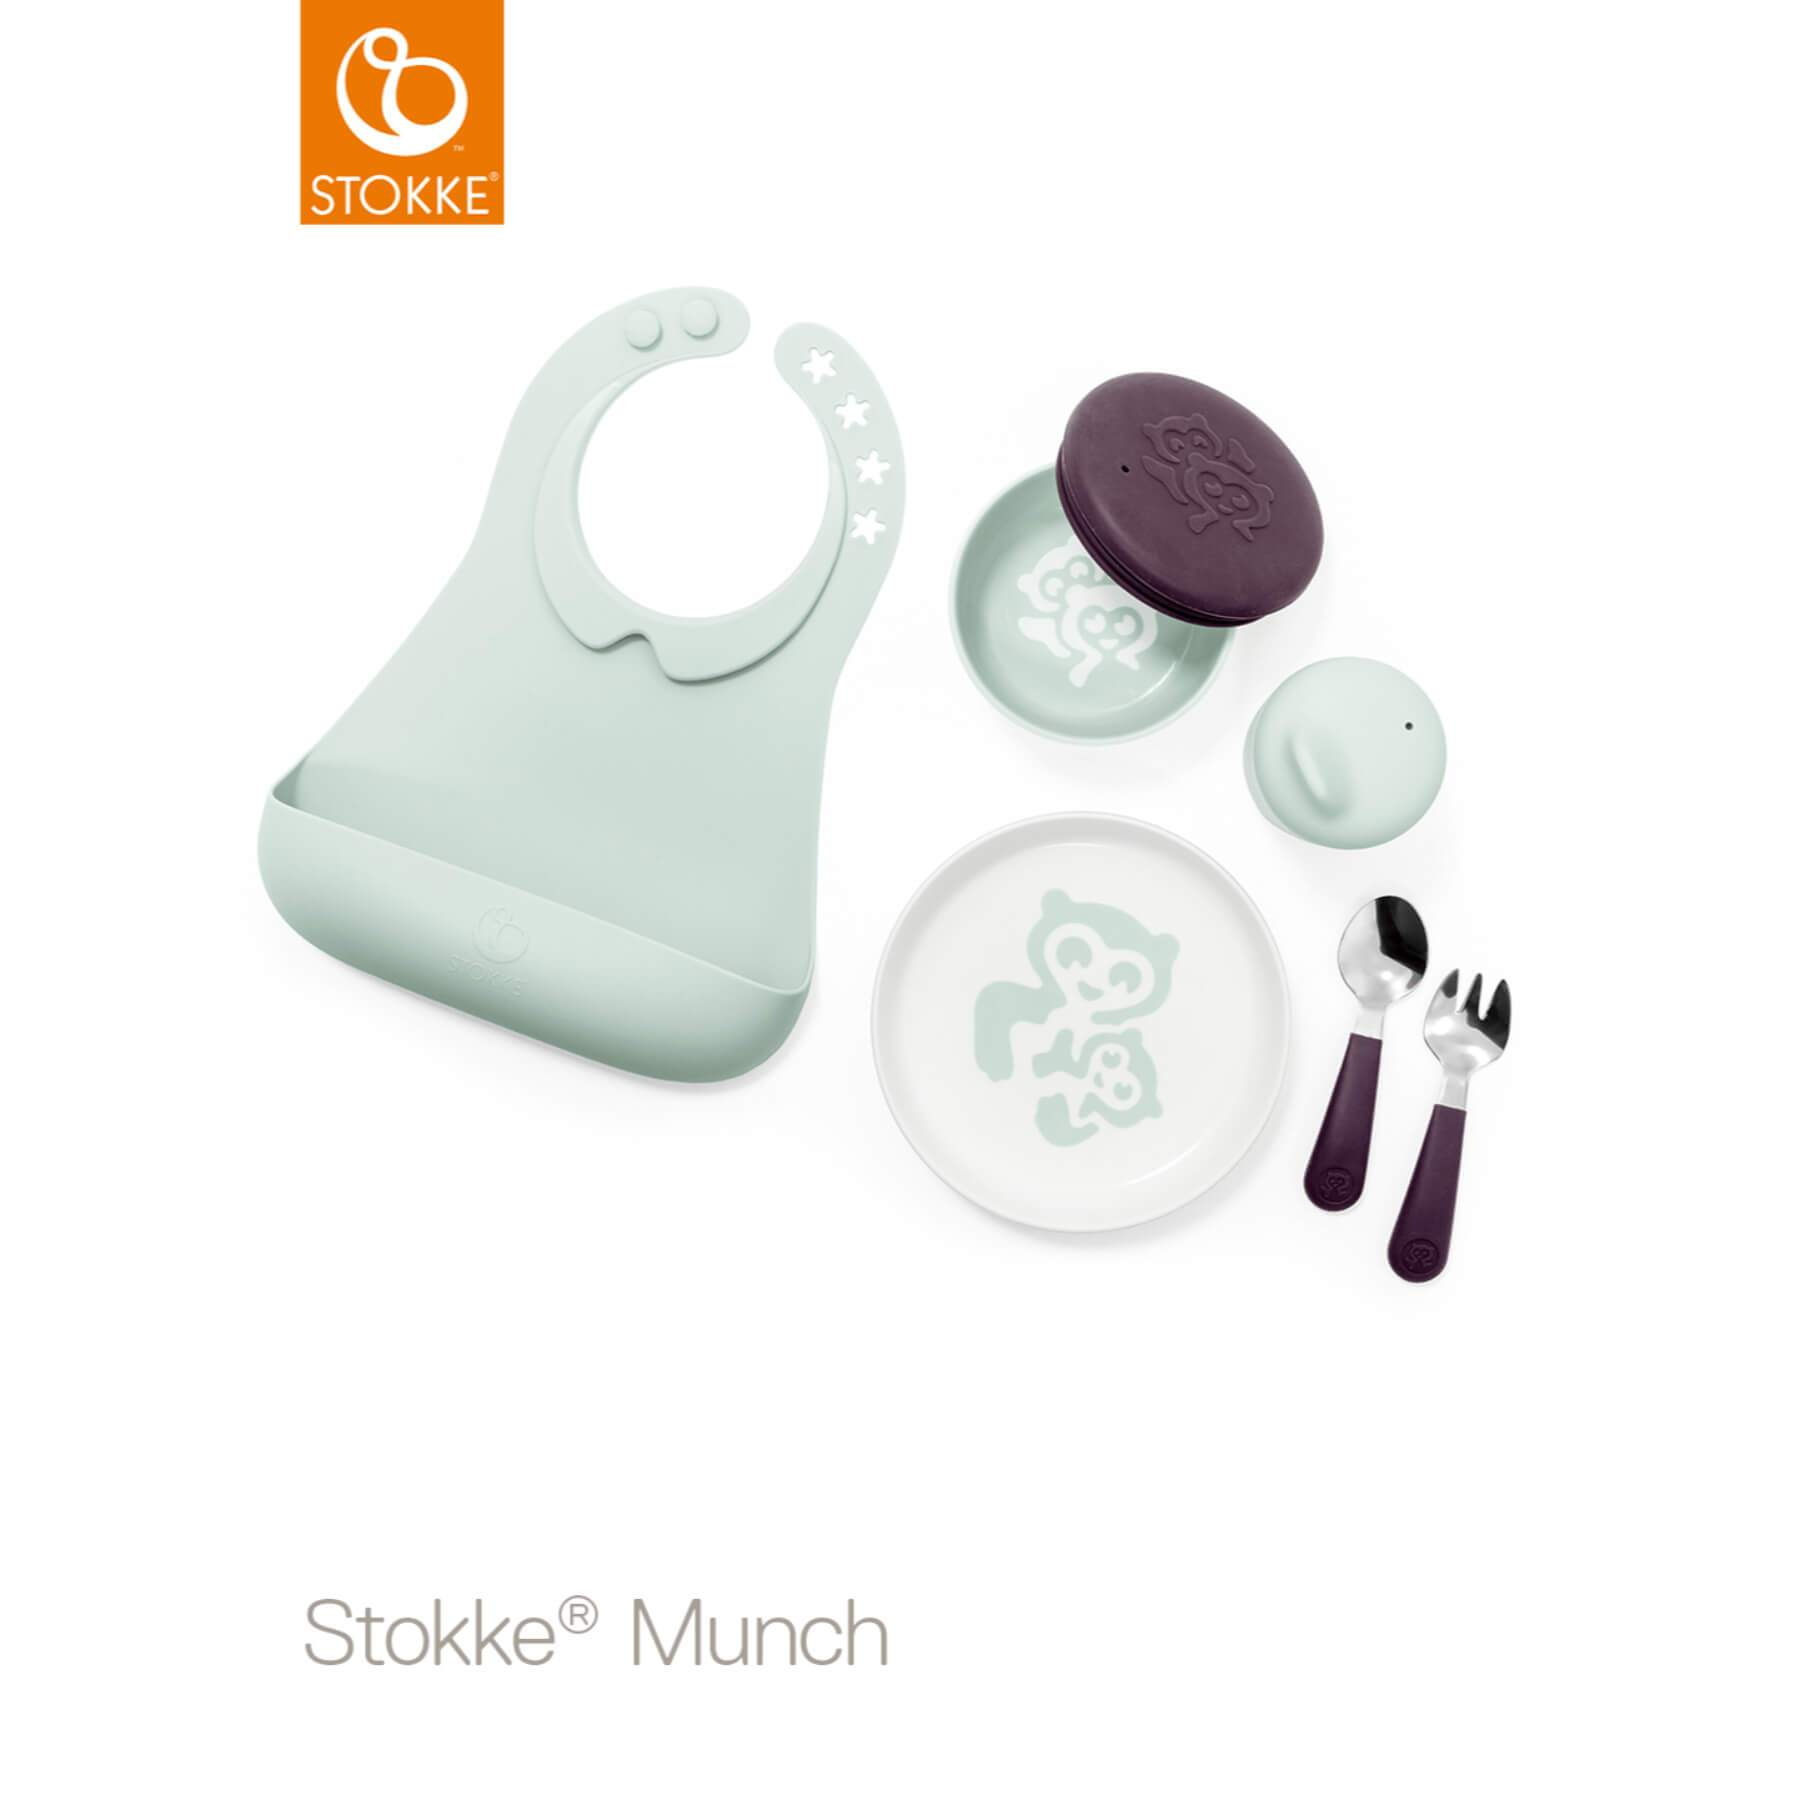 Stokke Munch - Complete